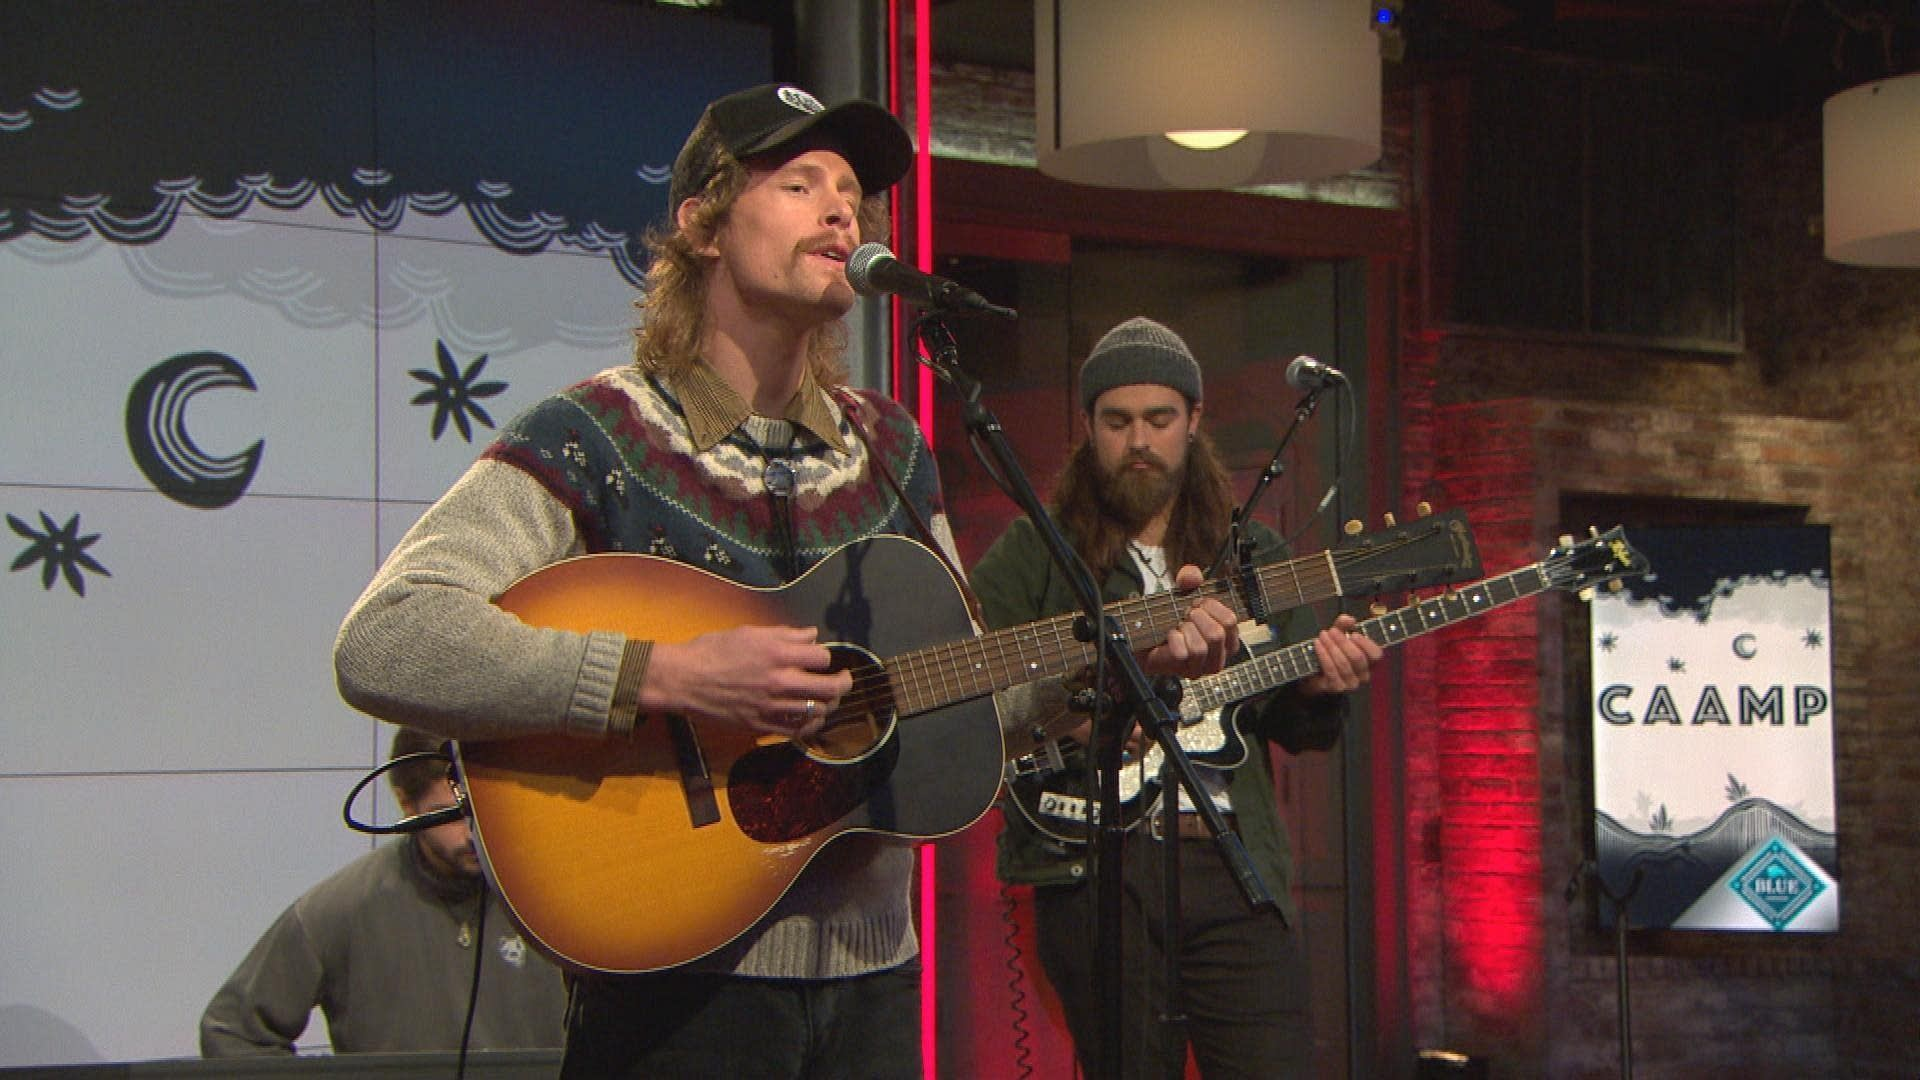 Caamp perform on CBS This Morning Saturday Sessions